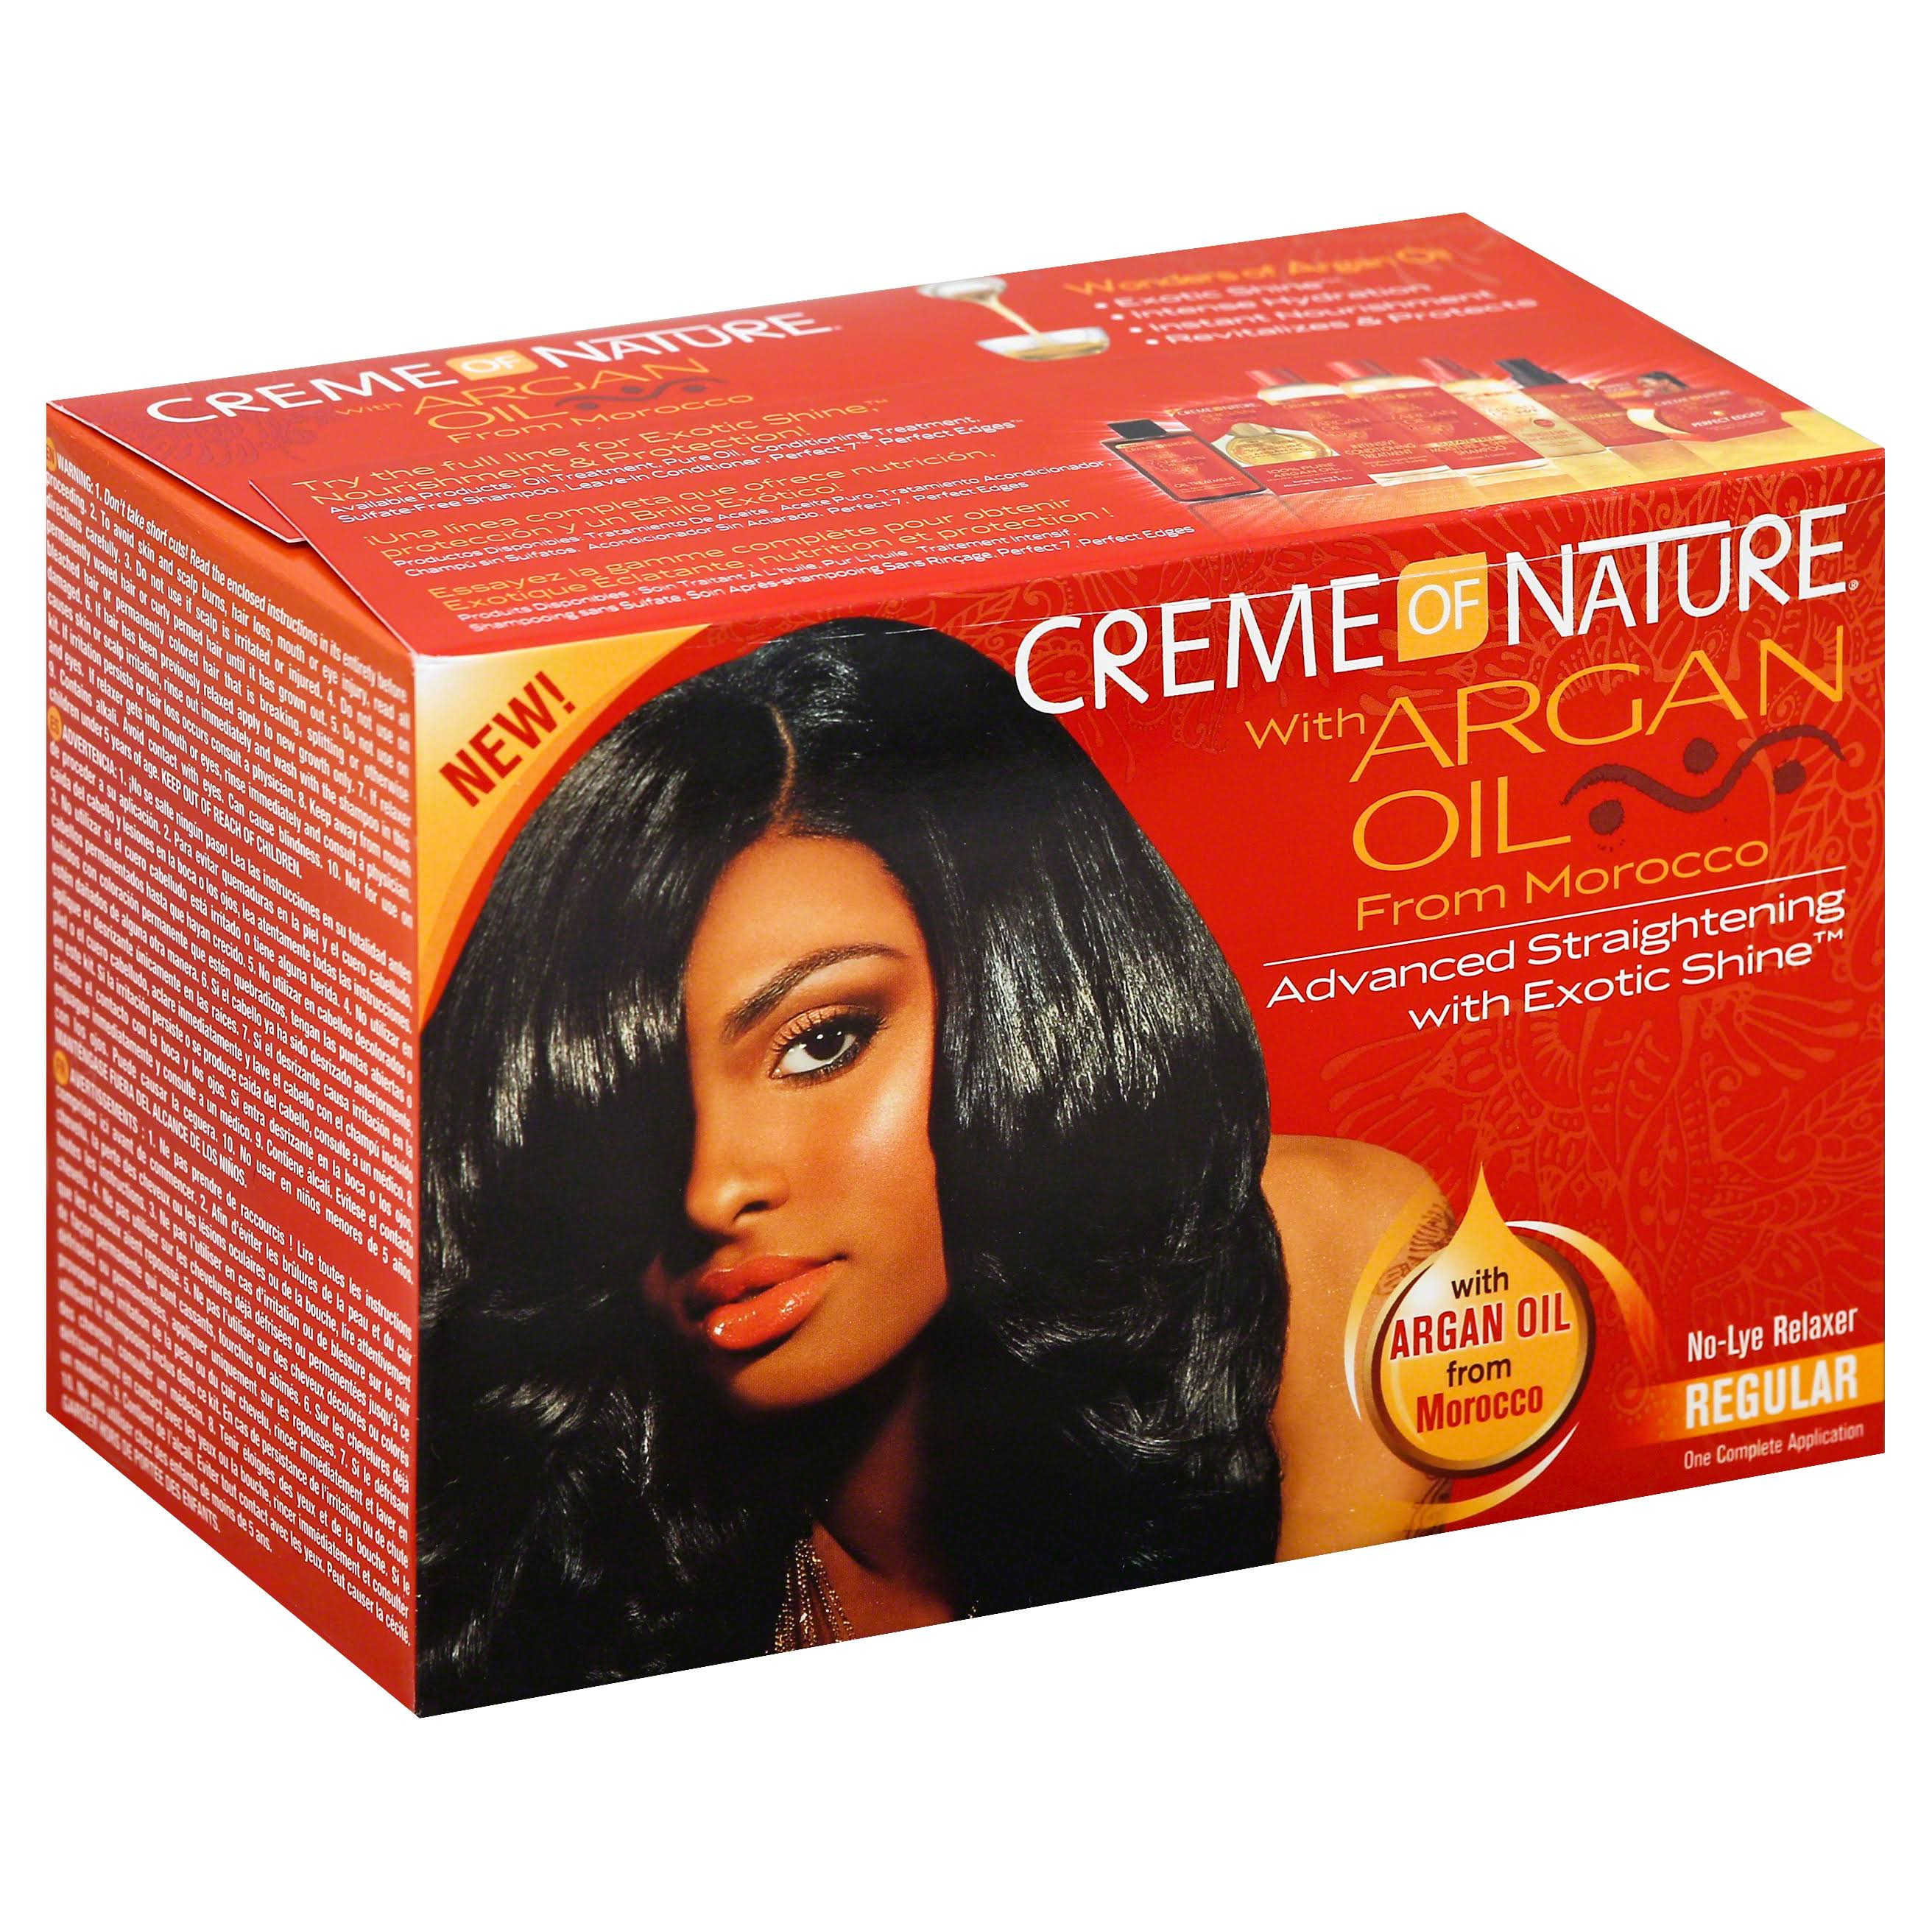 Creme of Nature Advanced Straightening with Exotic Shine Regular No-Lye Relaxer